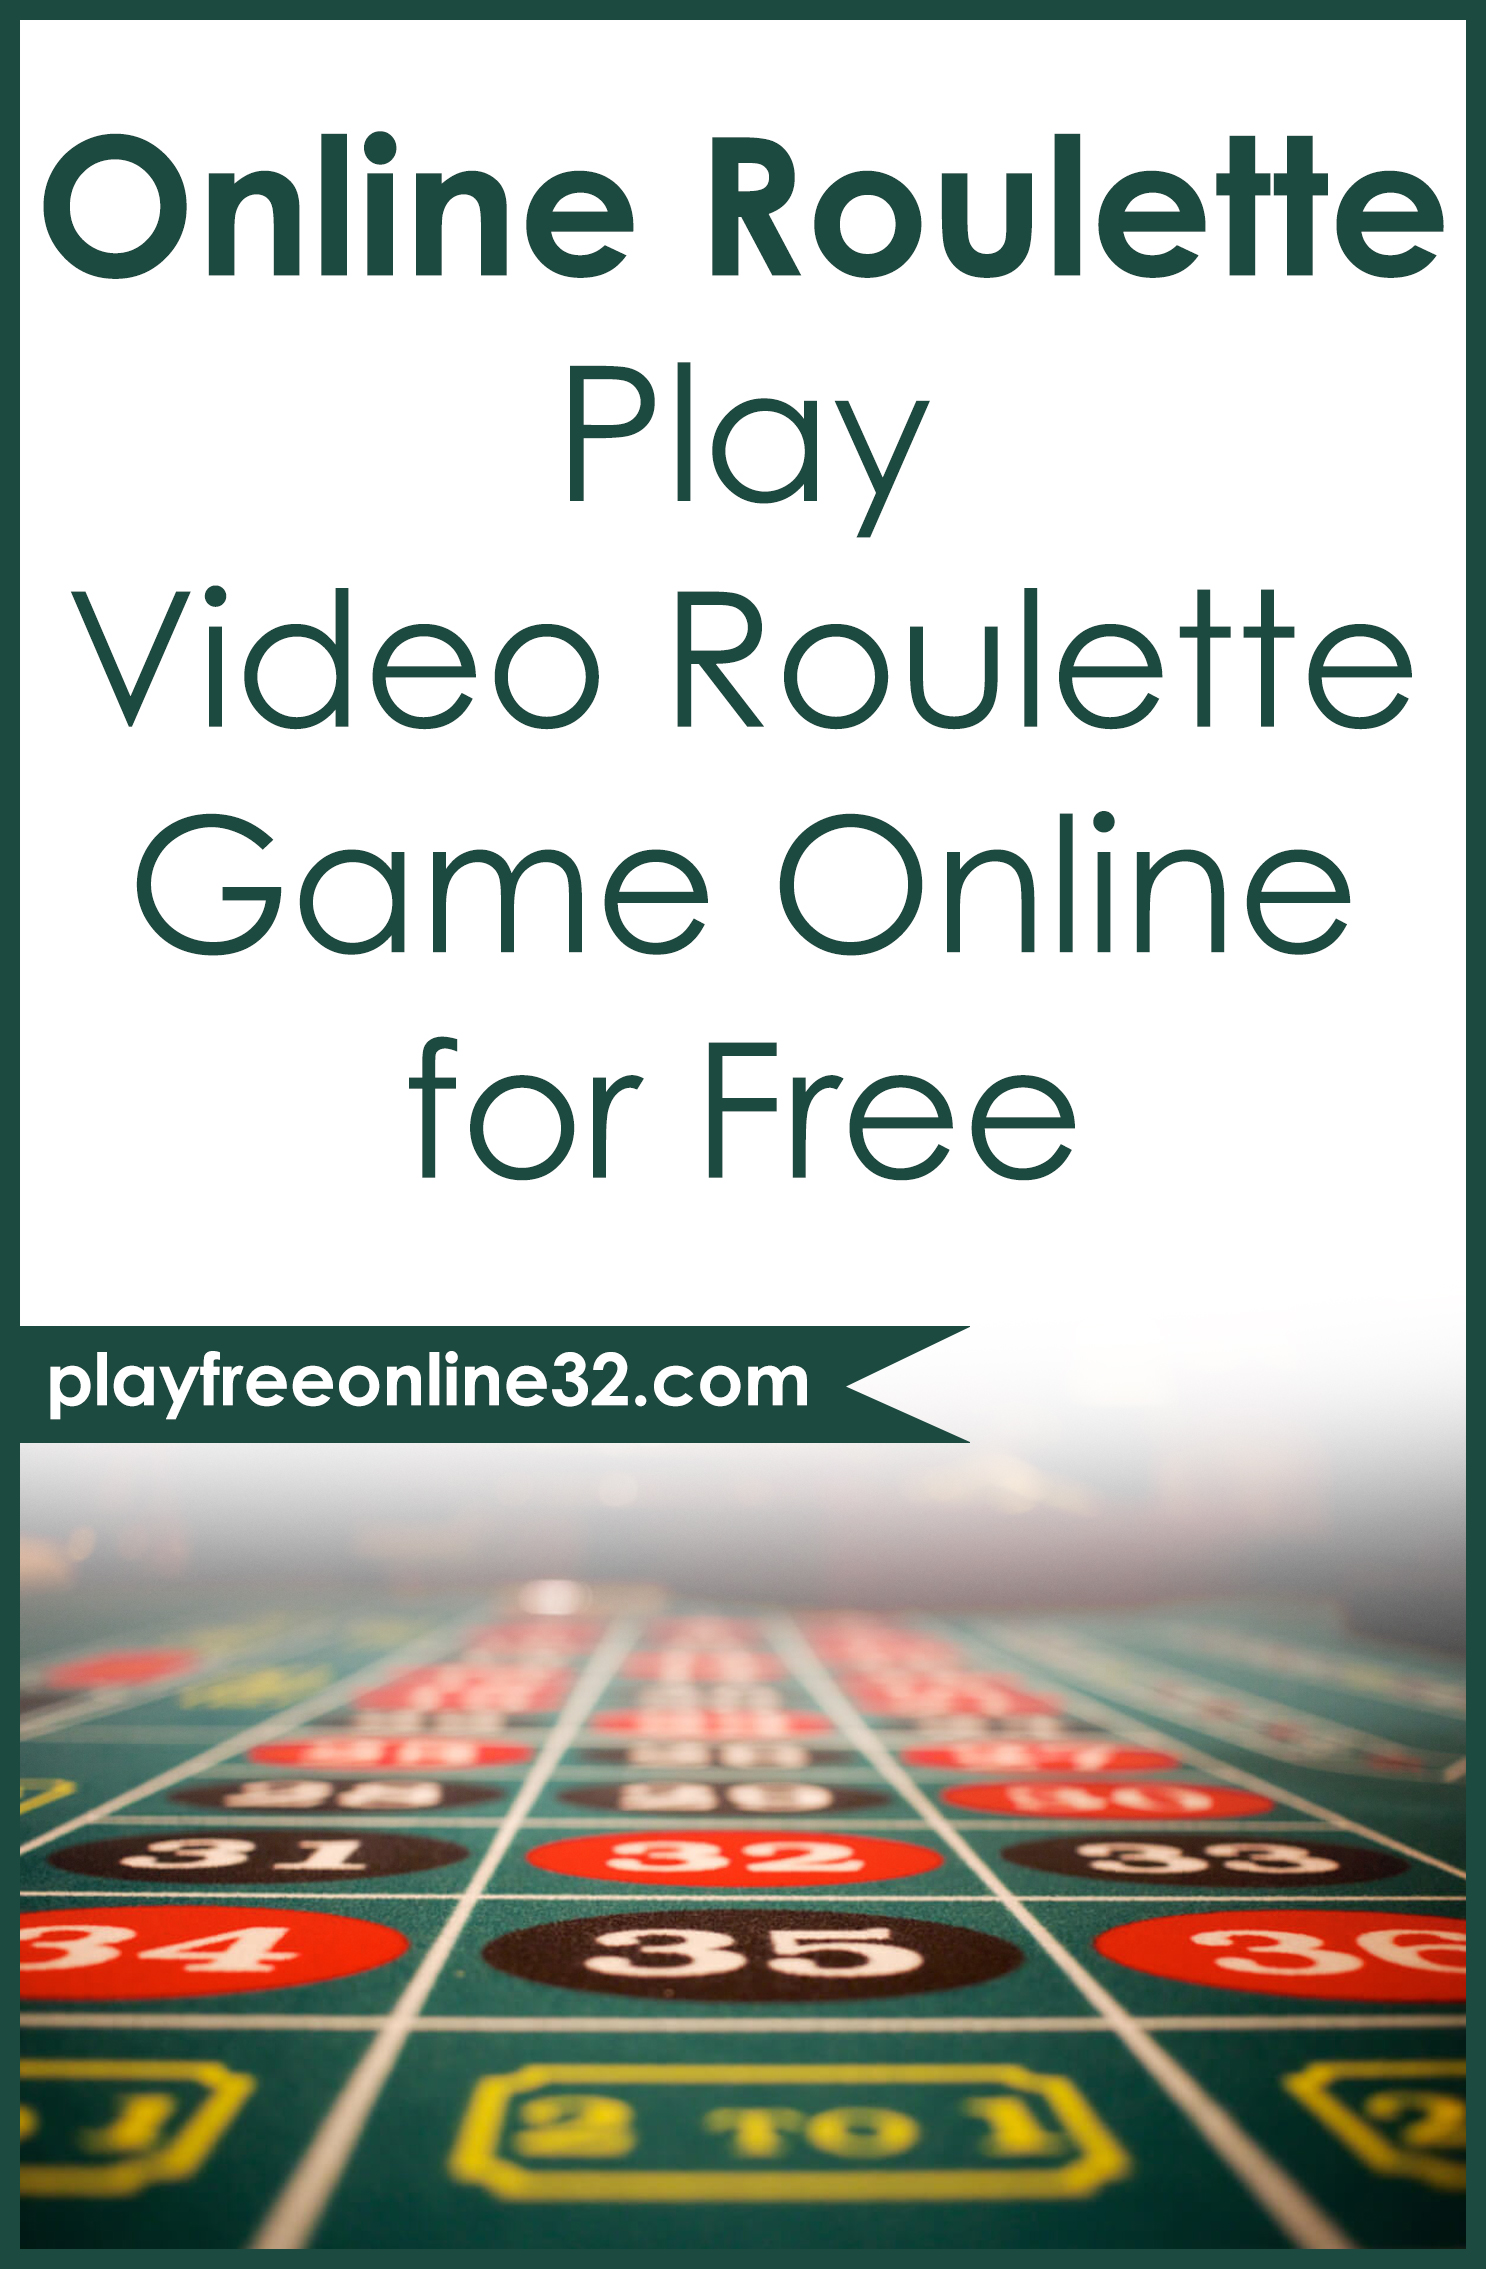 Online Roulette • Play Video Roulette Game Online for Free Pinterest